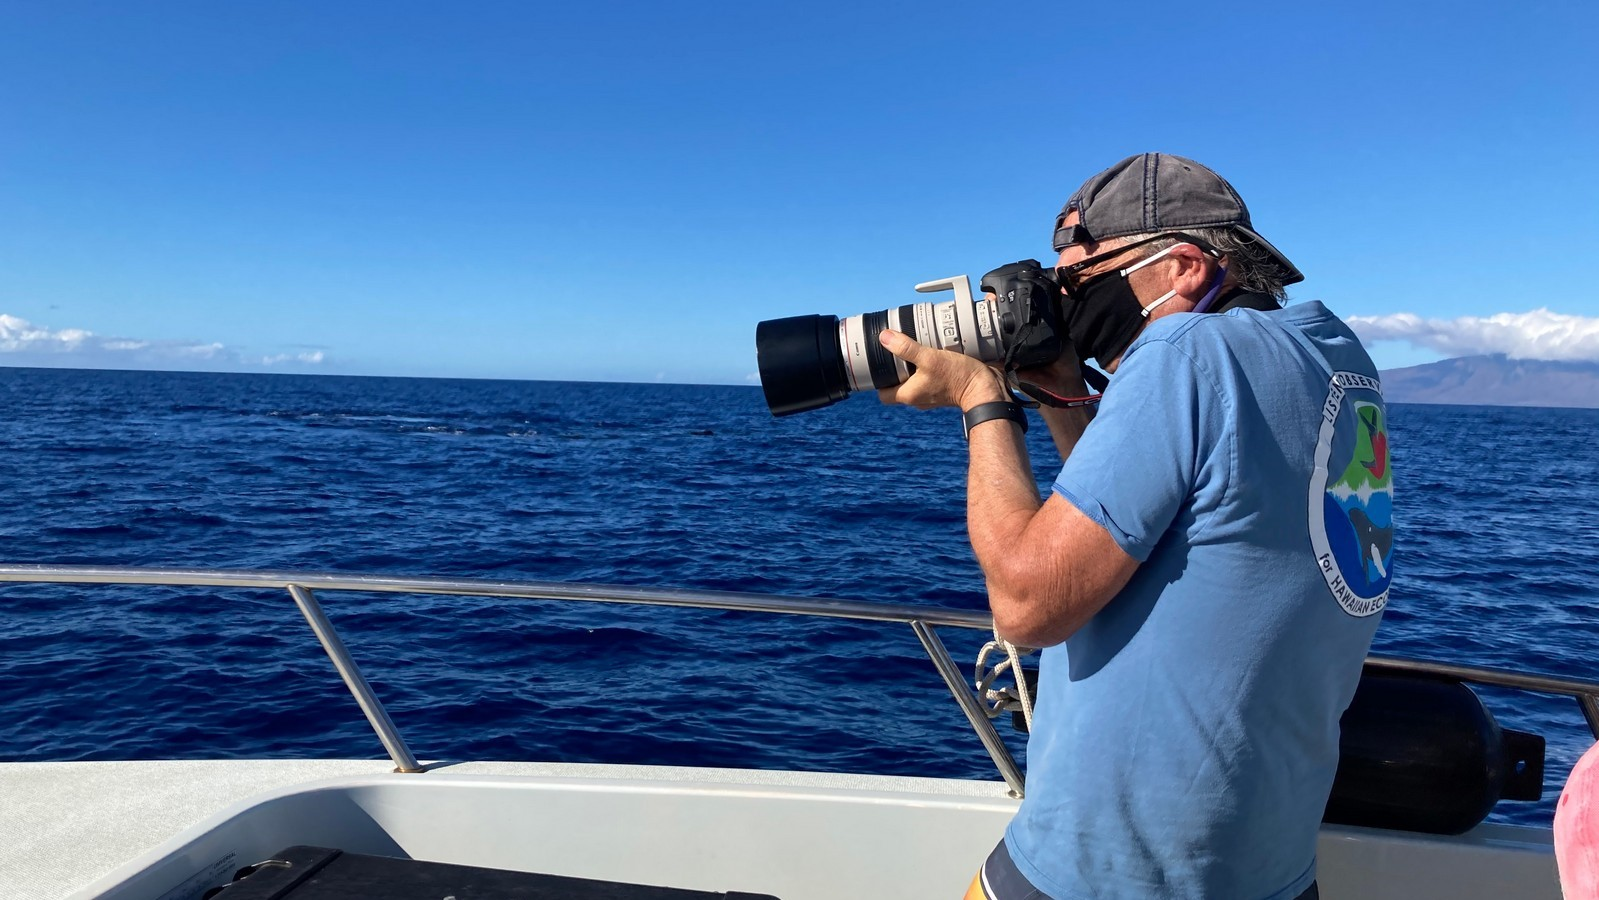 Adam Pack on boat at sea, holding and looking through telephoto lens.